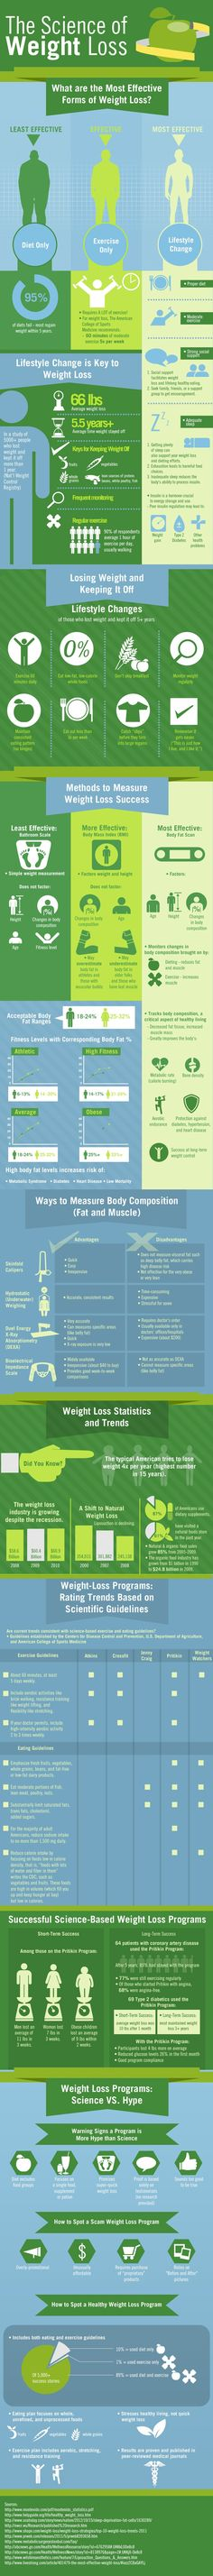 A sustained healthy weight and body composition is about a lifestyle change. Making healthy choices just means you have some control and employ moderation. Good food choices combined with regular exercise like walking, jogging, or rowing will get you well on your way. The equation is simple... healthy diet   cardiovascular conditioning   strength training   flexibility = a healthier you. - If you like this pin, repin it, like it, comment and follow our boards :-) #FastSimpleFitness